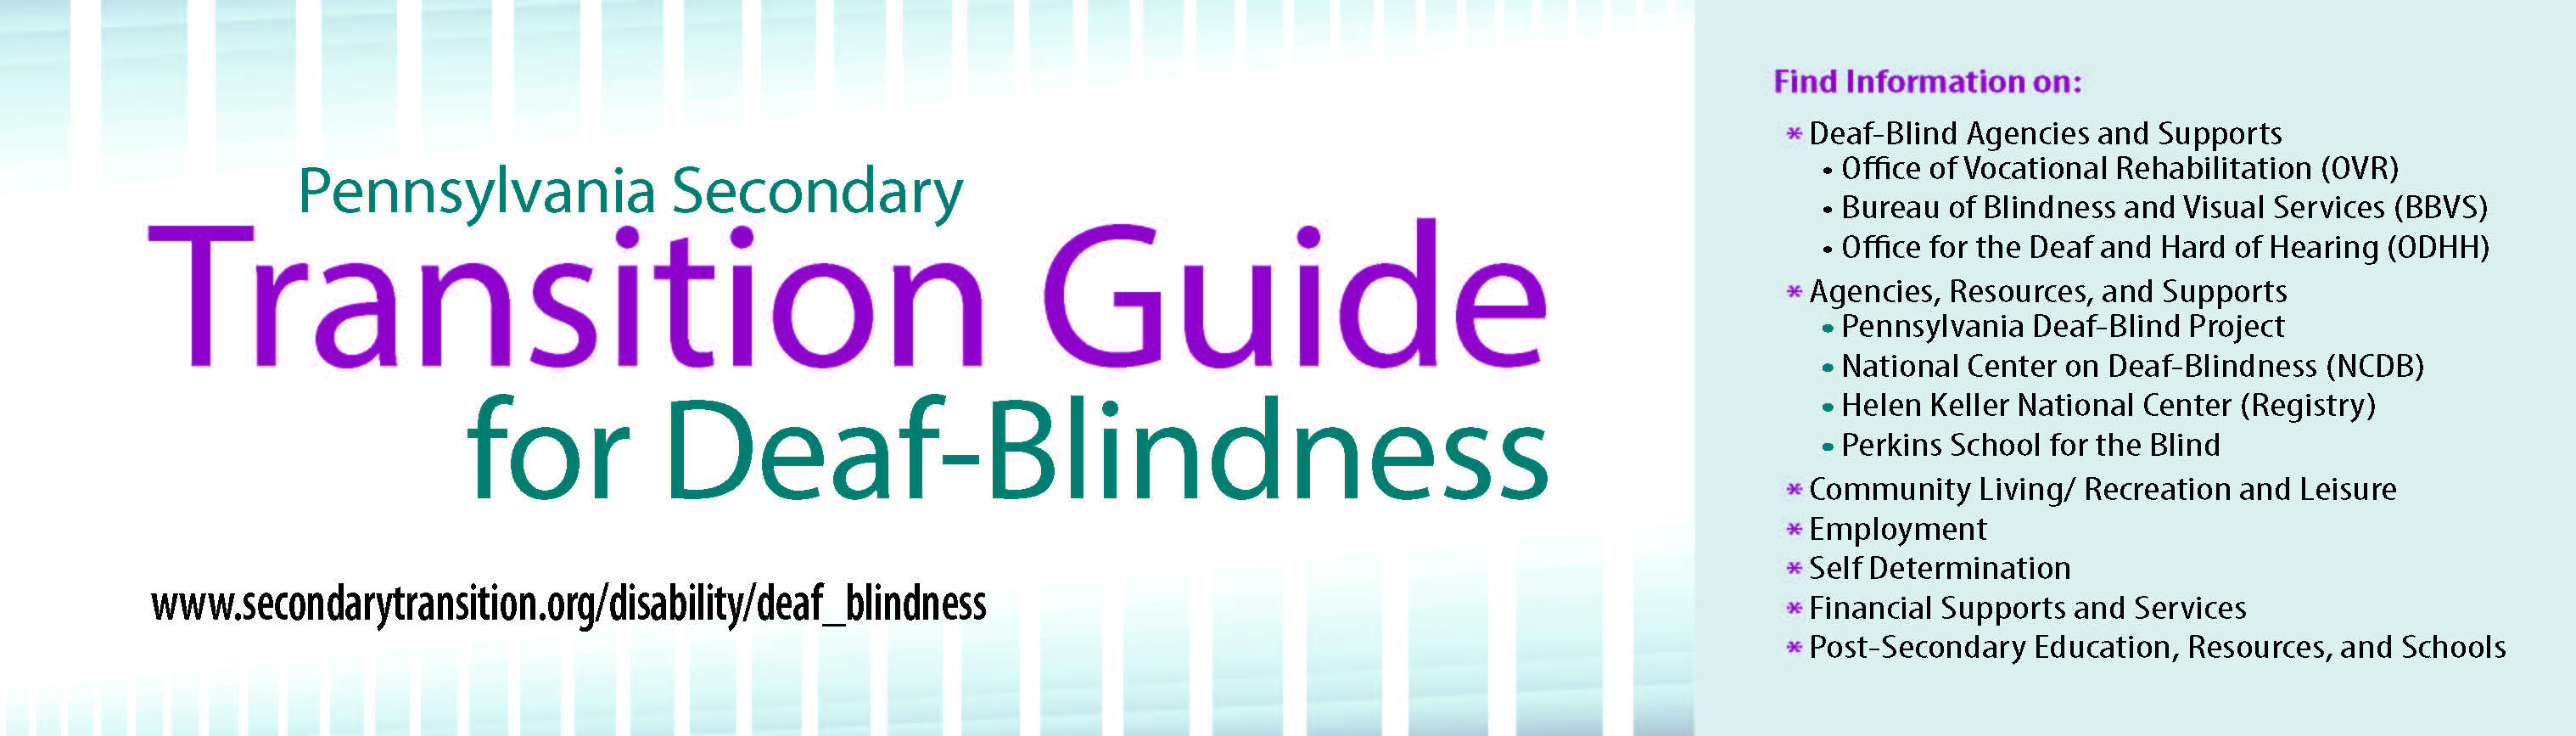 Secondary Transition Guide for Deaf-Blindness